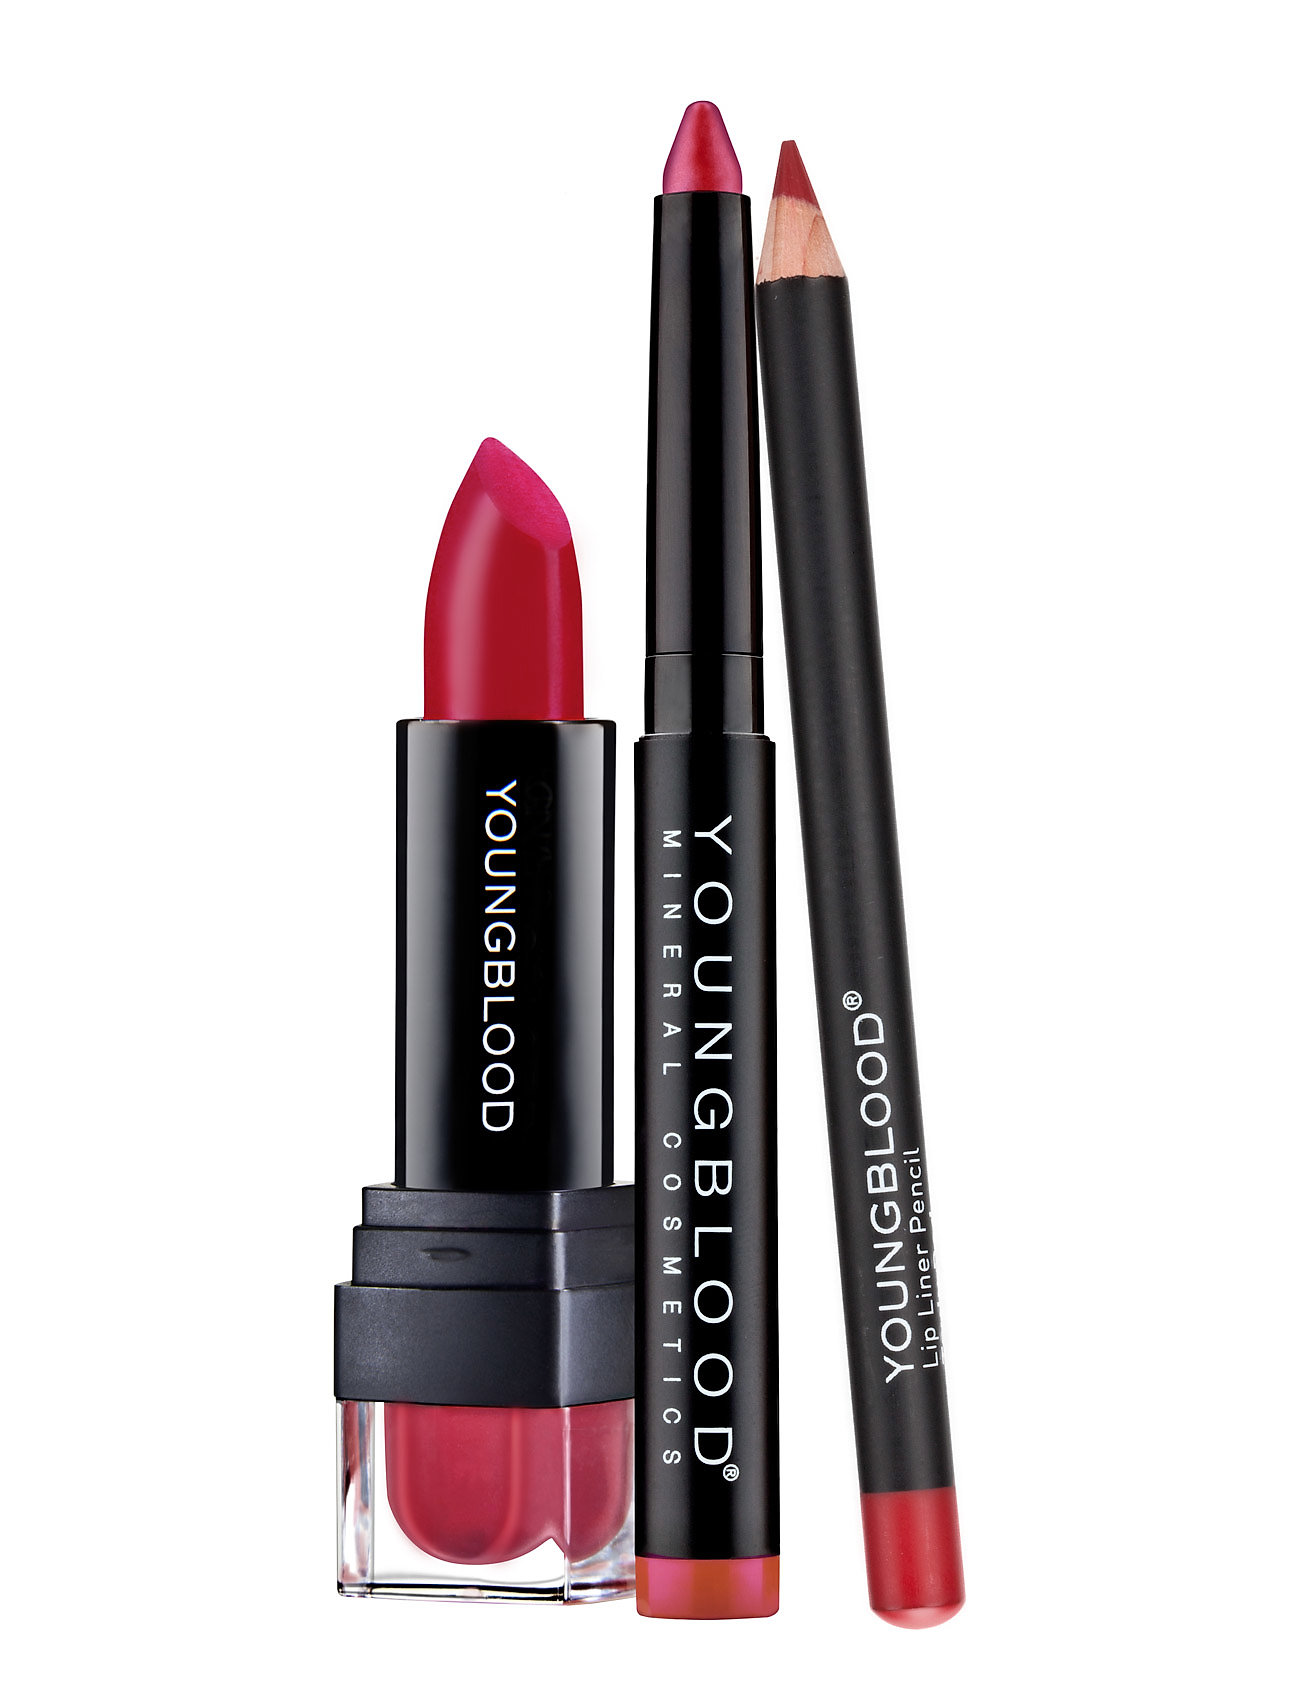 Youngblood KIT MAKE-UP HOLIDAY KITLIPS CRAYON, LIPSTSICK & PENCIL - NO COLOR